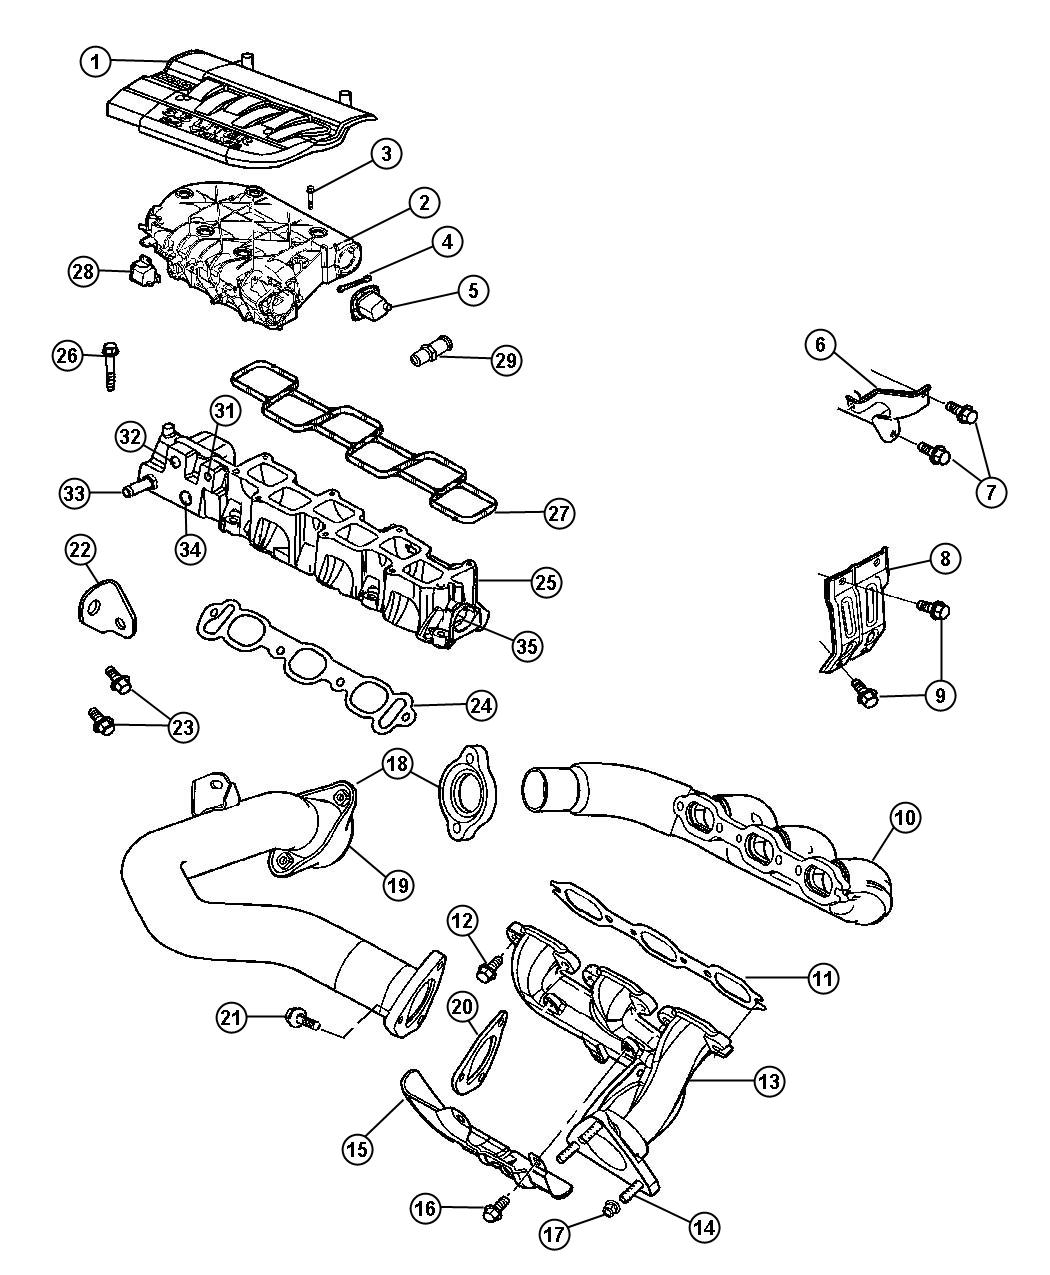 Chrysler Pacifica Gasket Crossover Pipe Engine